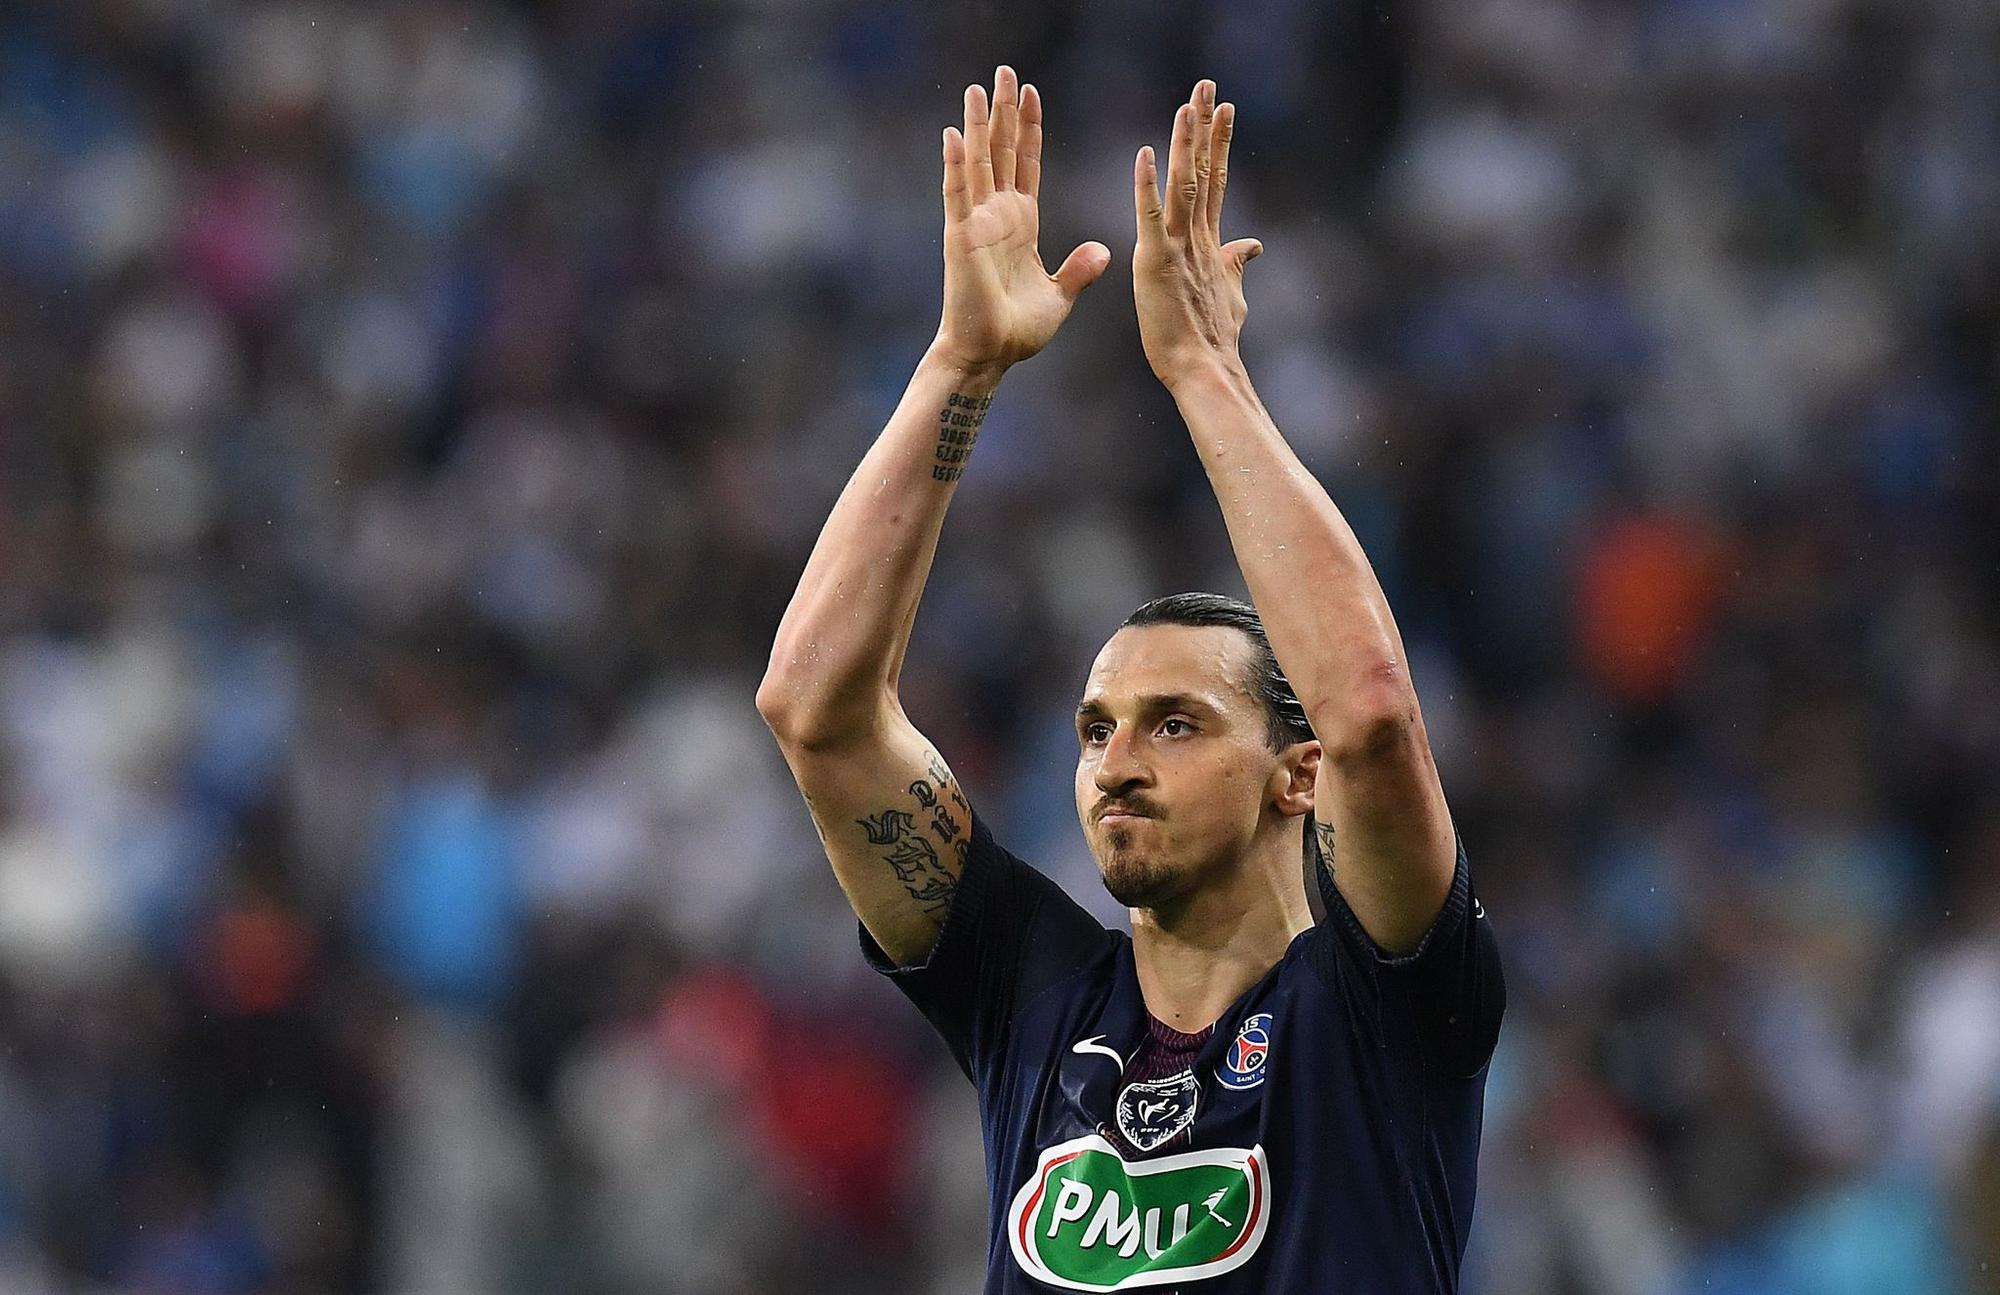 Zlatan Ibrahimovic in the French Cup final between Marseille and Paris Saint-Germain on May 21, 2016, in Saint-Denis, north of Paris.